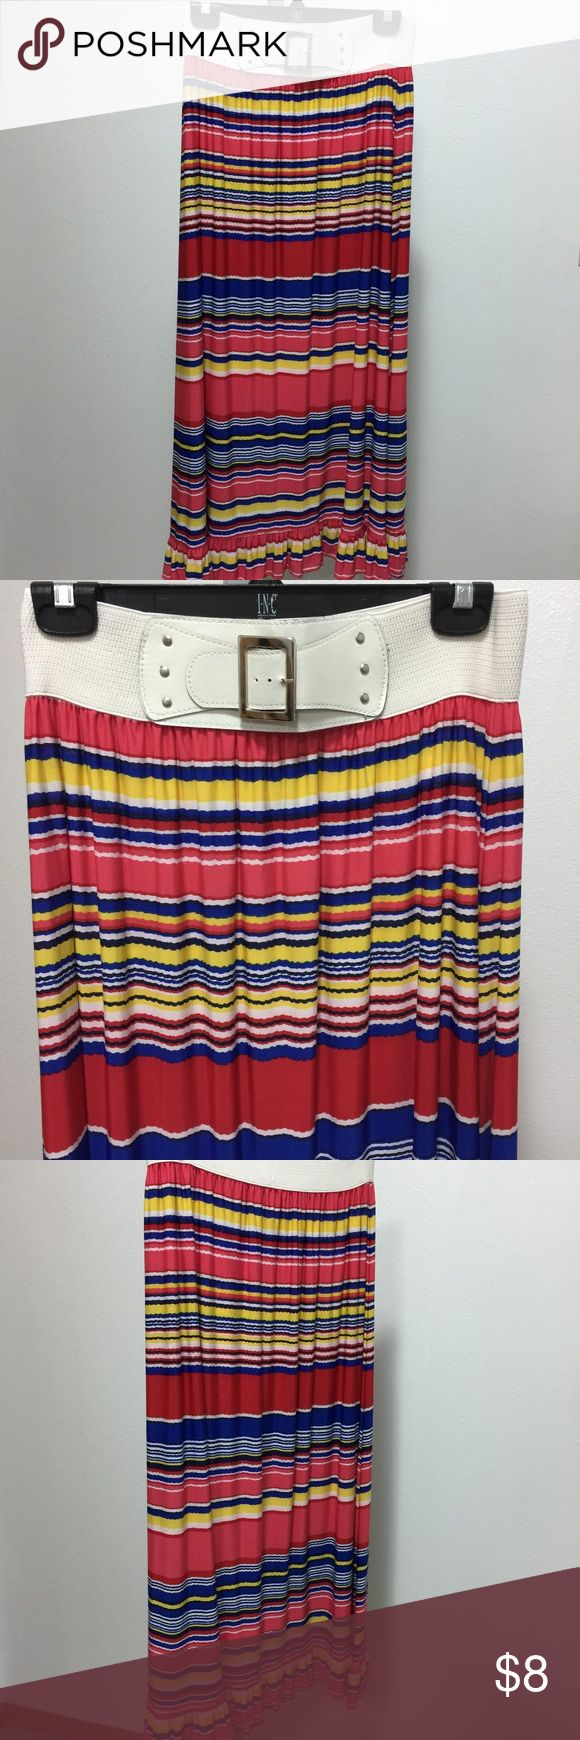 Magic Striped Long Skirt with Built In Belt Sz XL Magic  Size XL  Long skirt with red, white, blue and yellow stripes. Wide elastic waist band with faux belt. Bottom hem is ruffled.  No material tag, but feels like polyester spandex blend. Skirt has some stretch.  Very nice used condition.  Measurements:  waist: 13 There is of stretch due to elastic waist  length: 36  p125 Magic Skirts Maxi